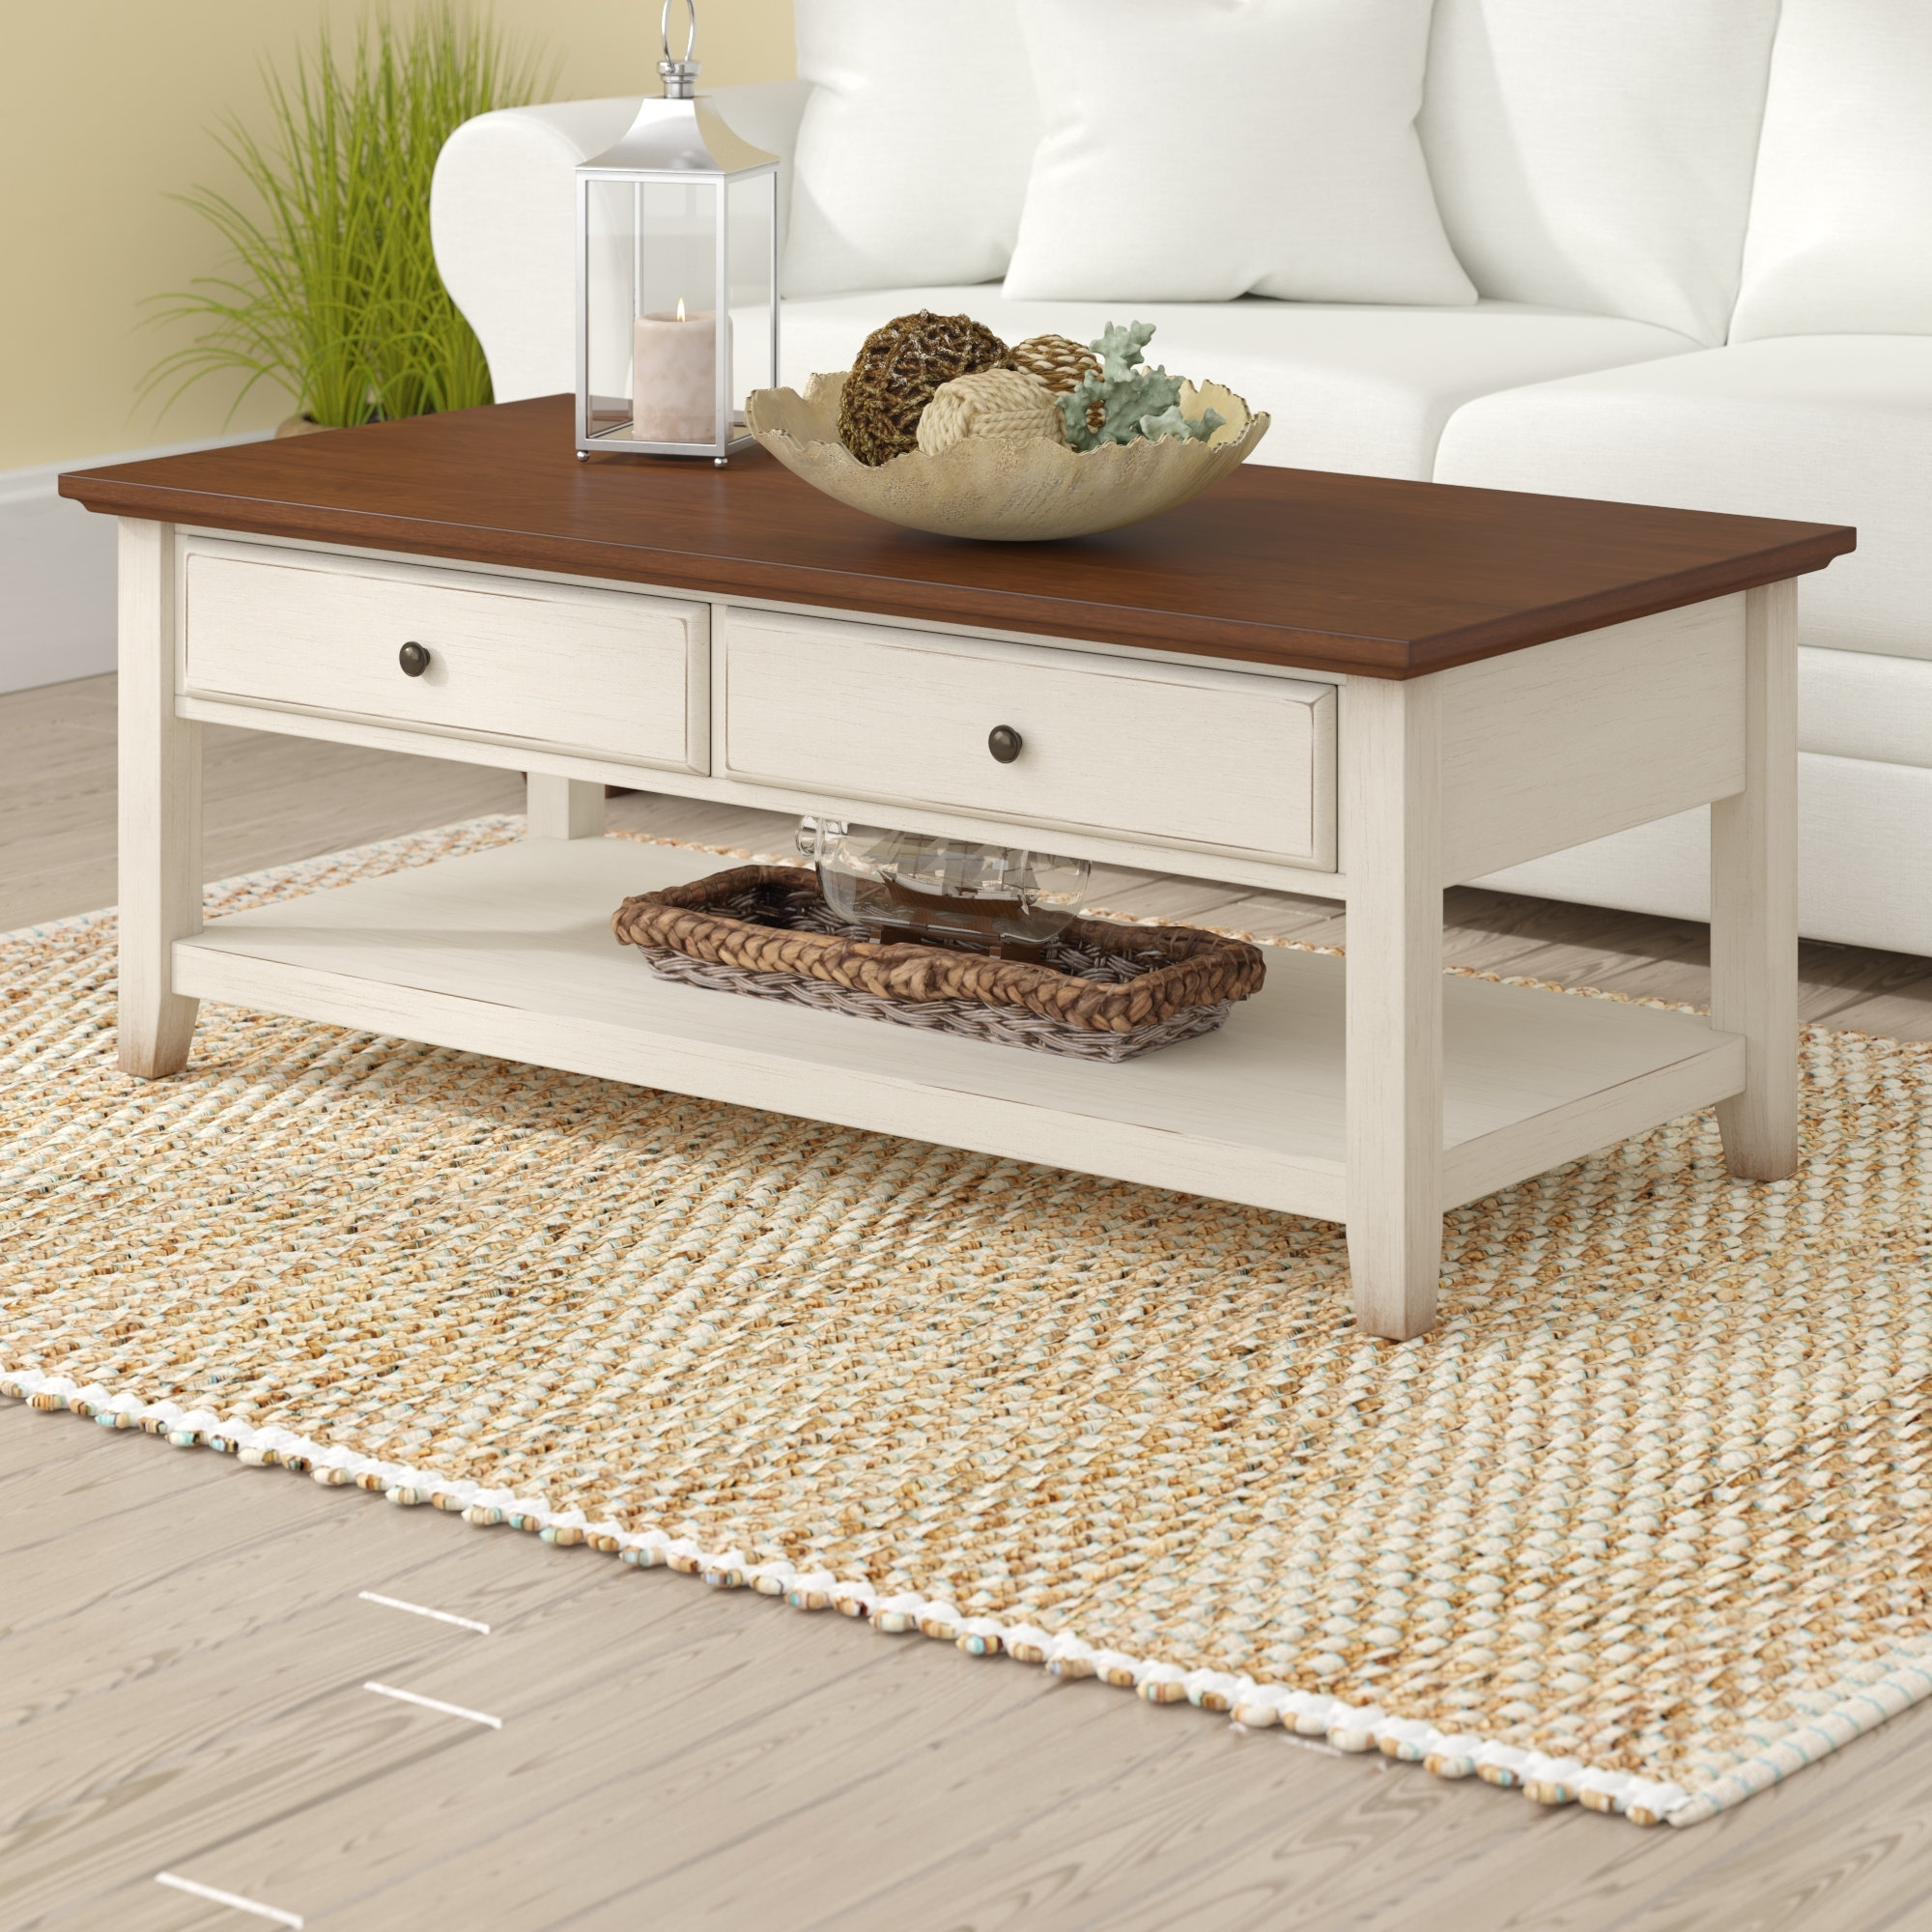 Trendy White Wash 2 Drawer/1 Door Coffee Tables Throughout Beachcrest Home Willow Coffee Table & Reviews (View 13 of 20)